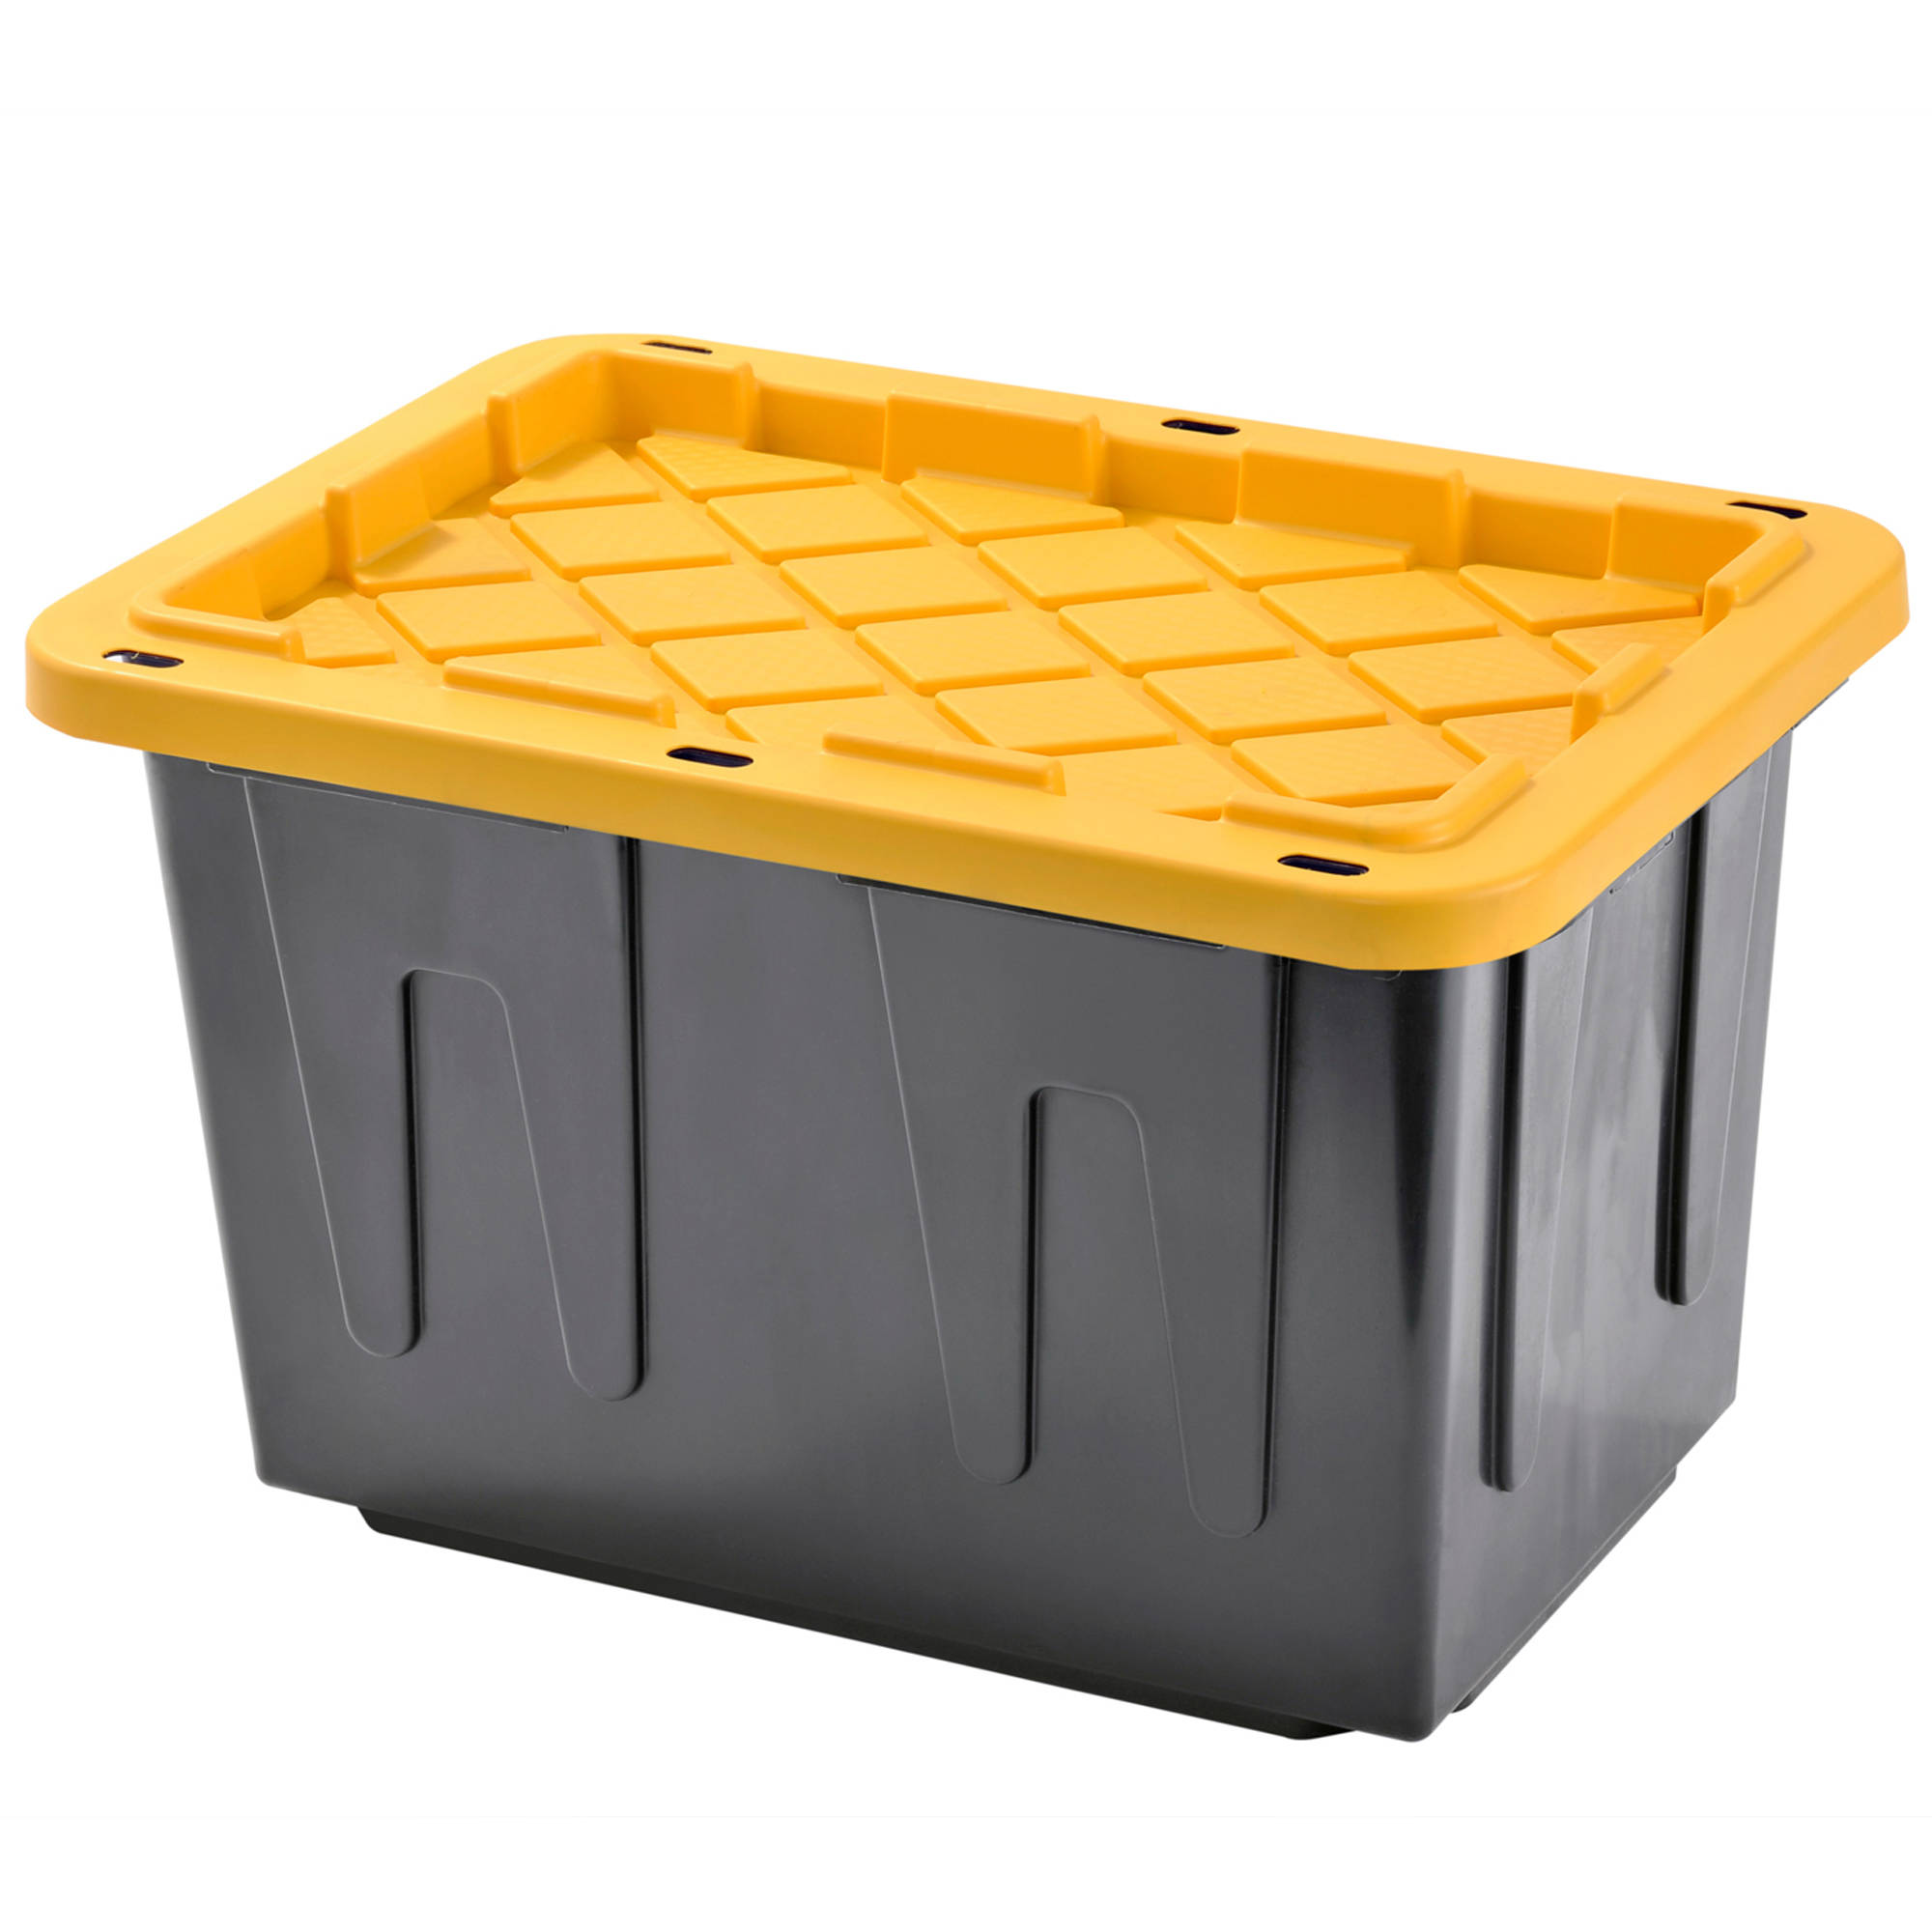 Plastic Heavy Duty Storage Tote Box, 23 Gallon, Black With Yellow Snap Lid, Stackable, 4-Pack